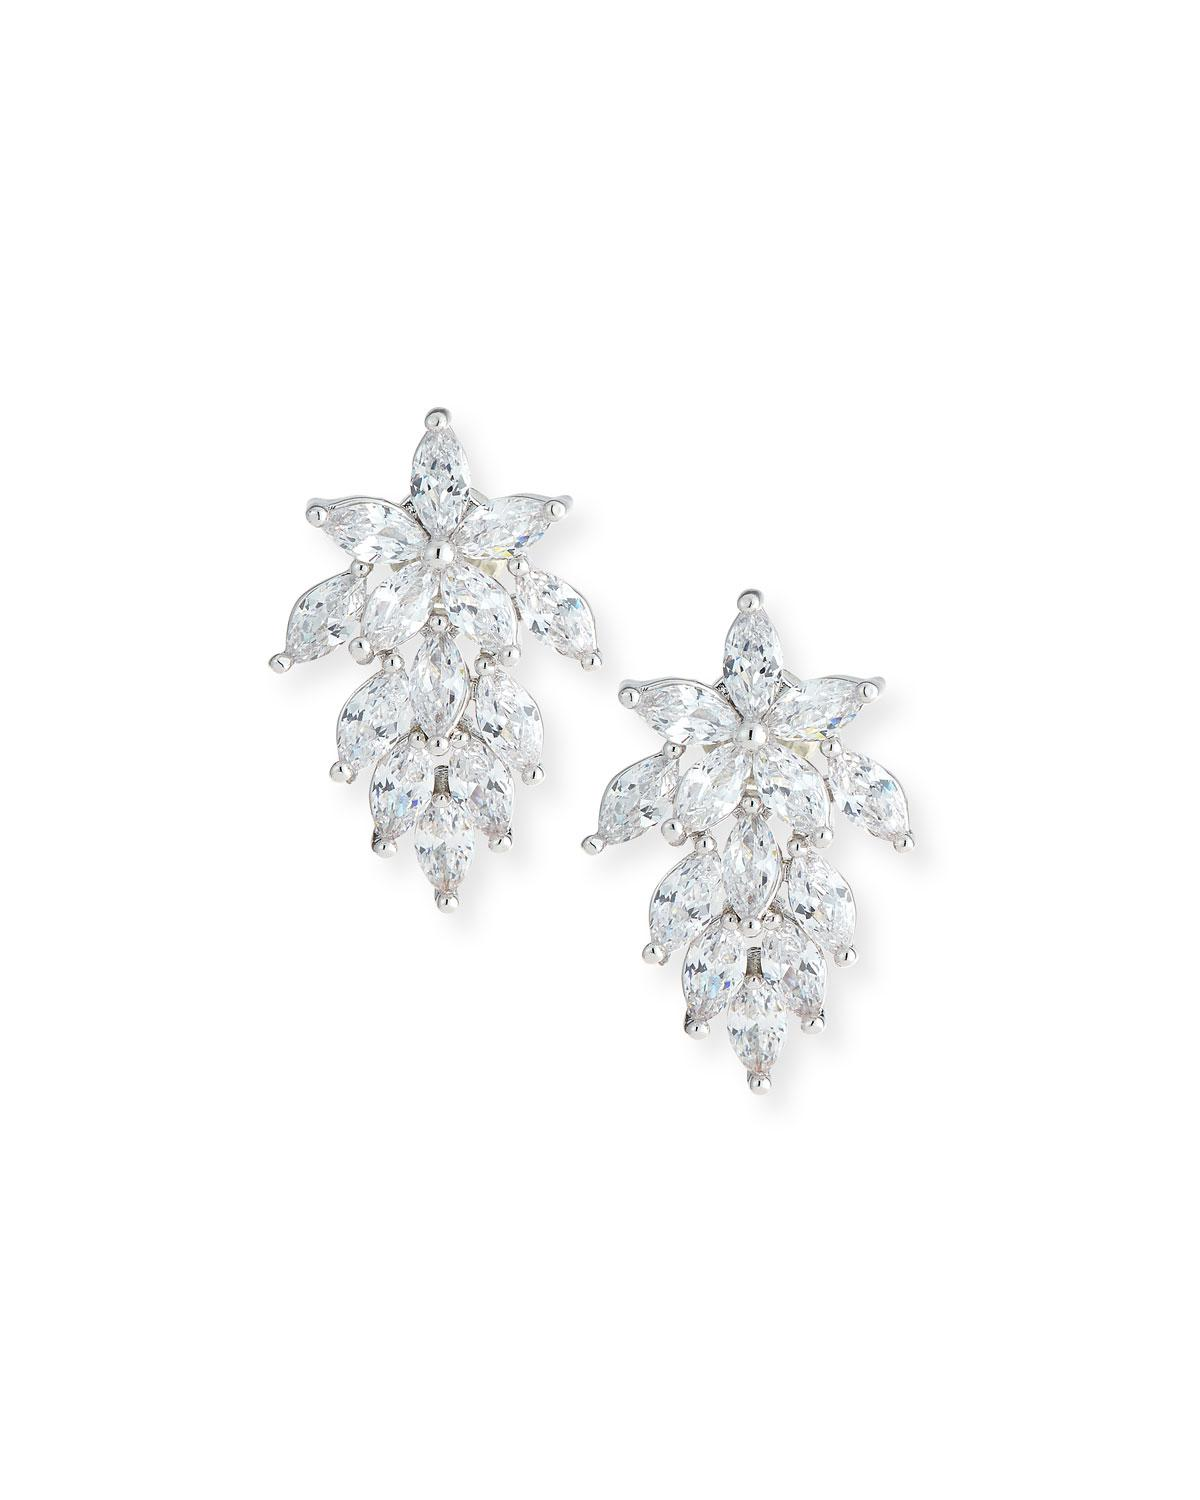 Fallon Monarch Micro Baguette Stud Earrings rNYMwdWs